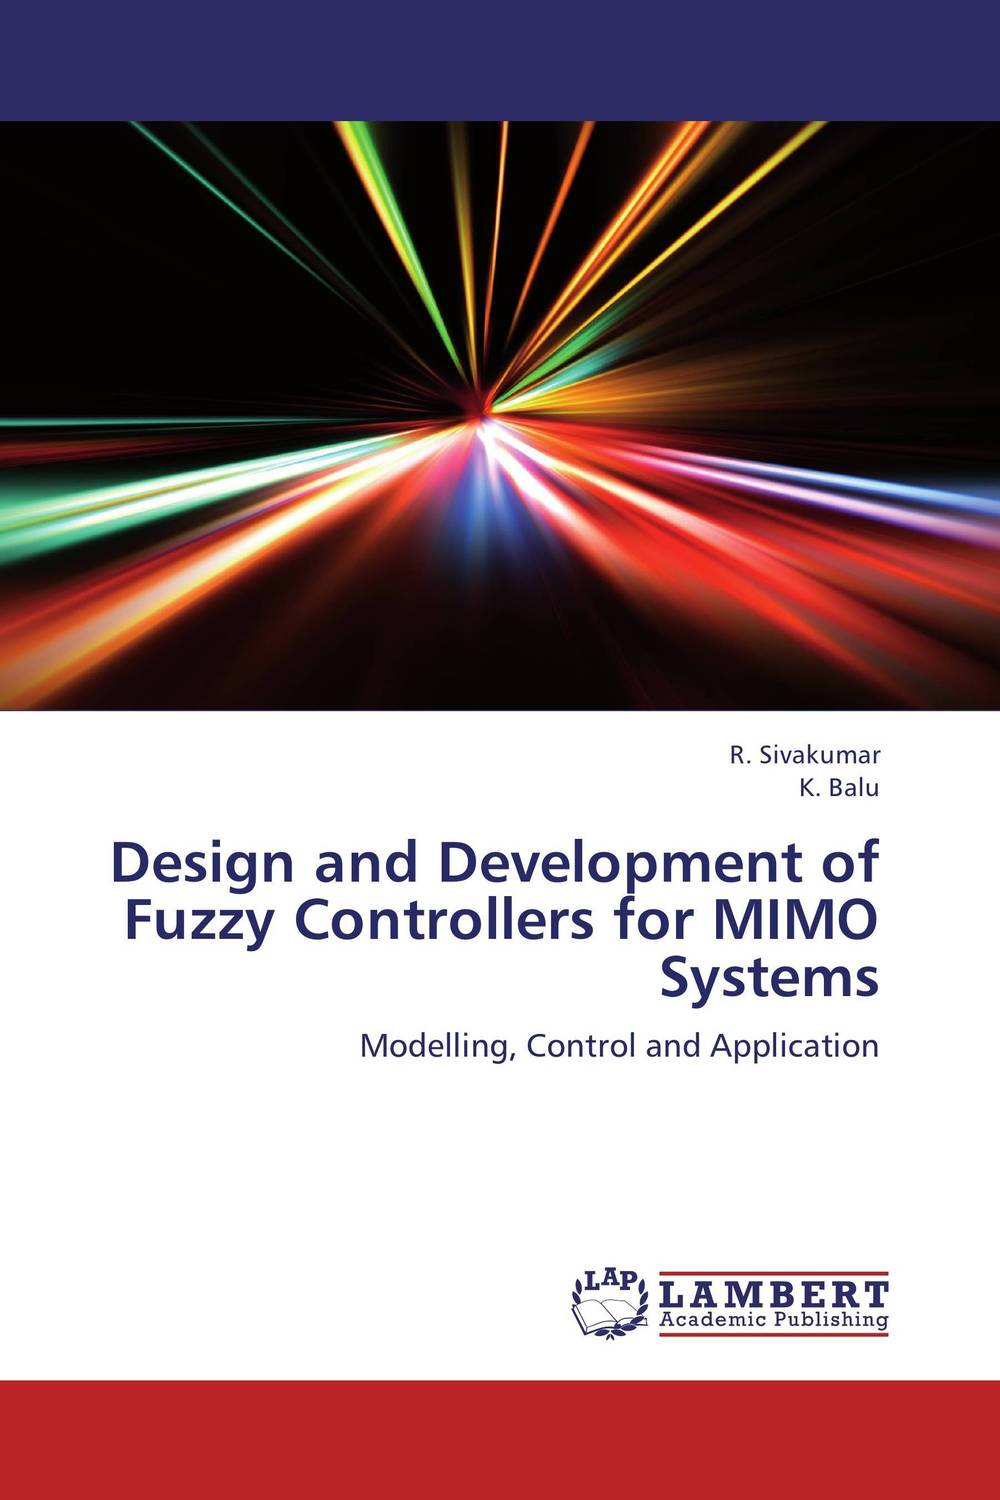 Design and Development of Fuzzy Controllers for MIMO Systems design and development of fuzzy controllers for mimo systems